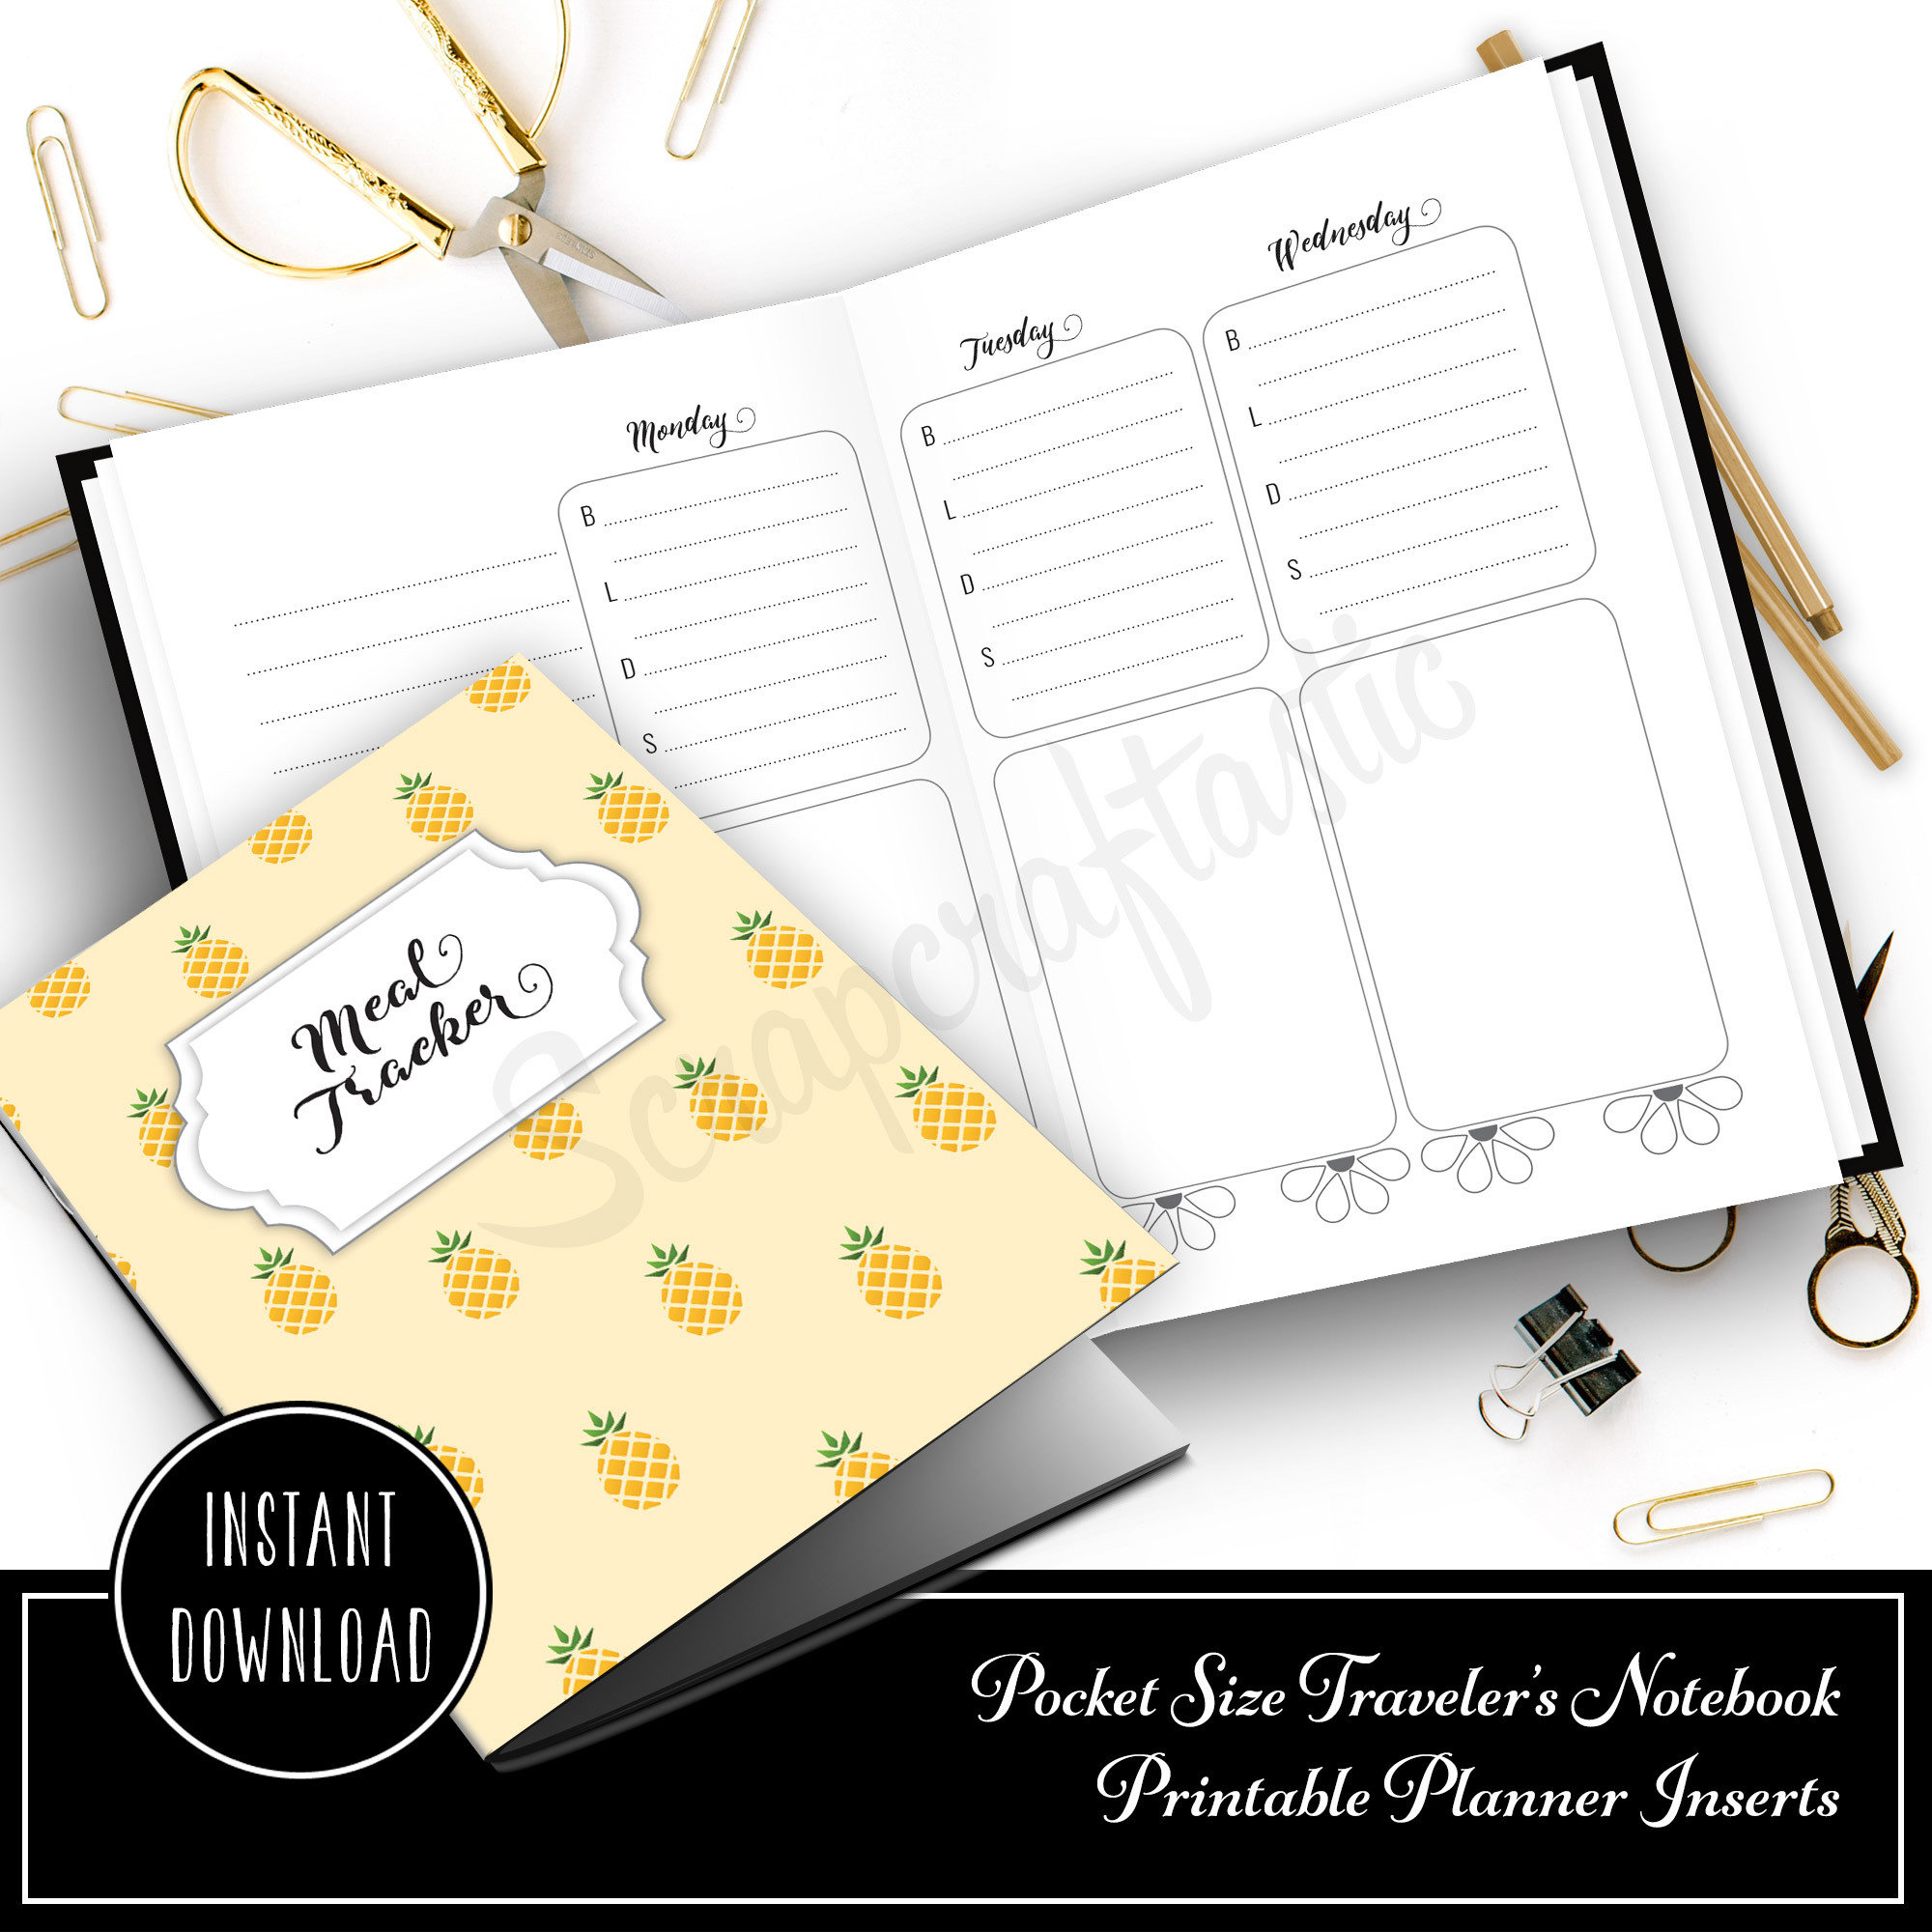 Meal Tracker Notebook:  Pocket Size Printable Traveler's Notebook with WO4P and Grocery Checklist with grid pages 10006